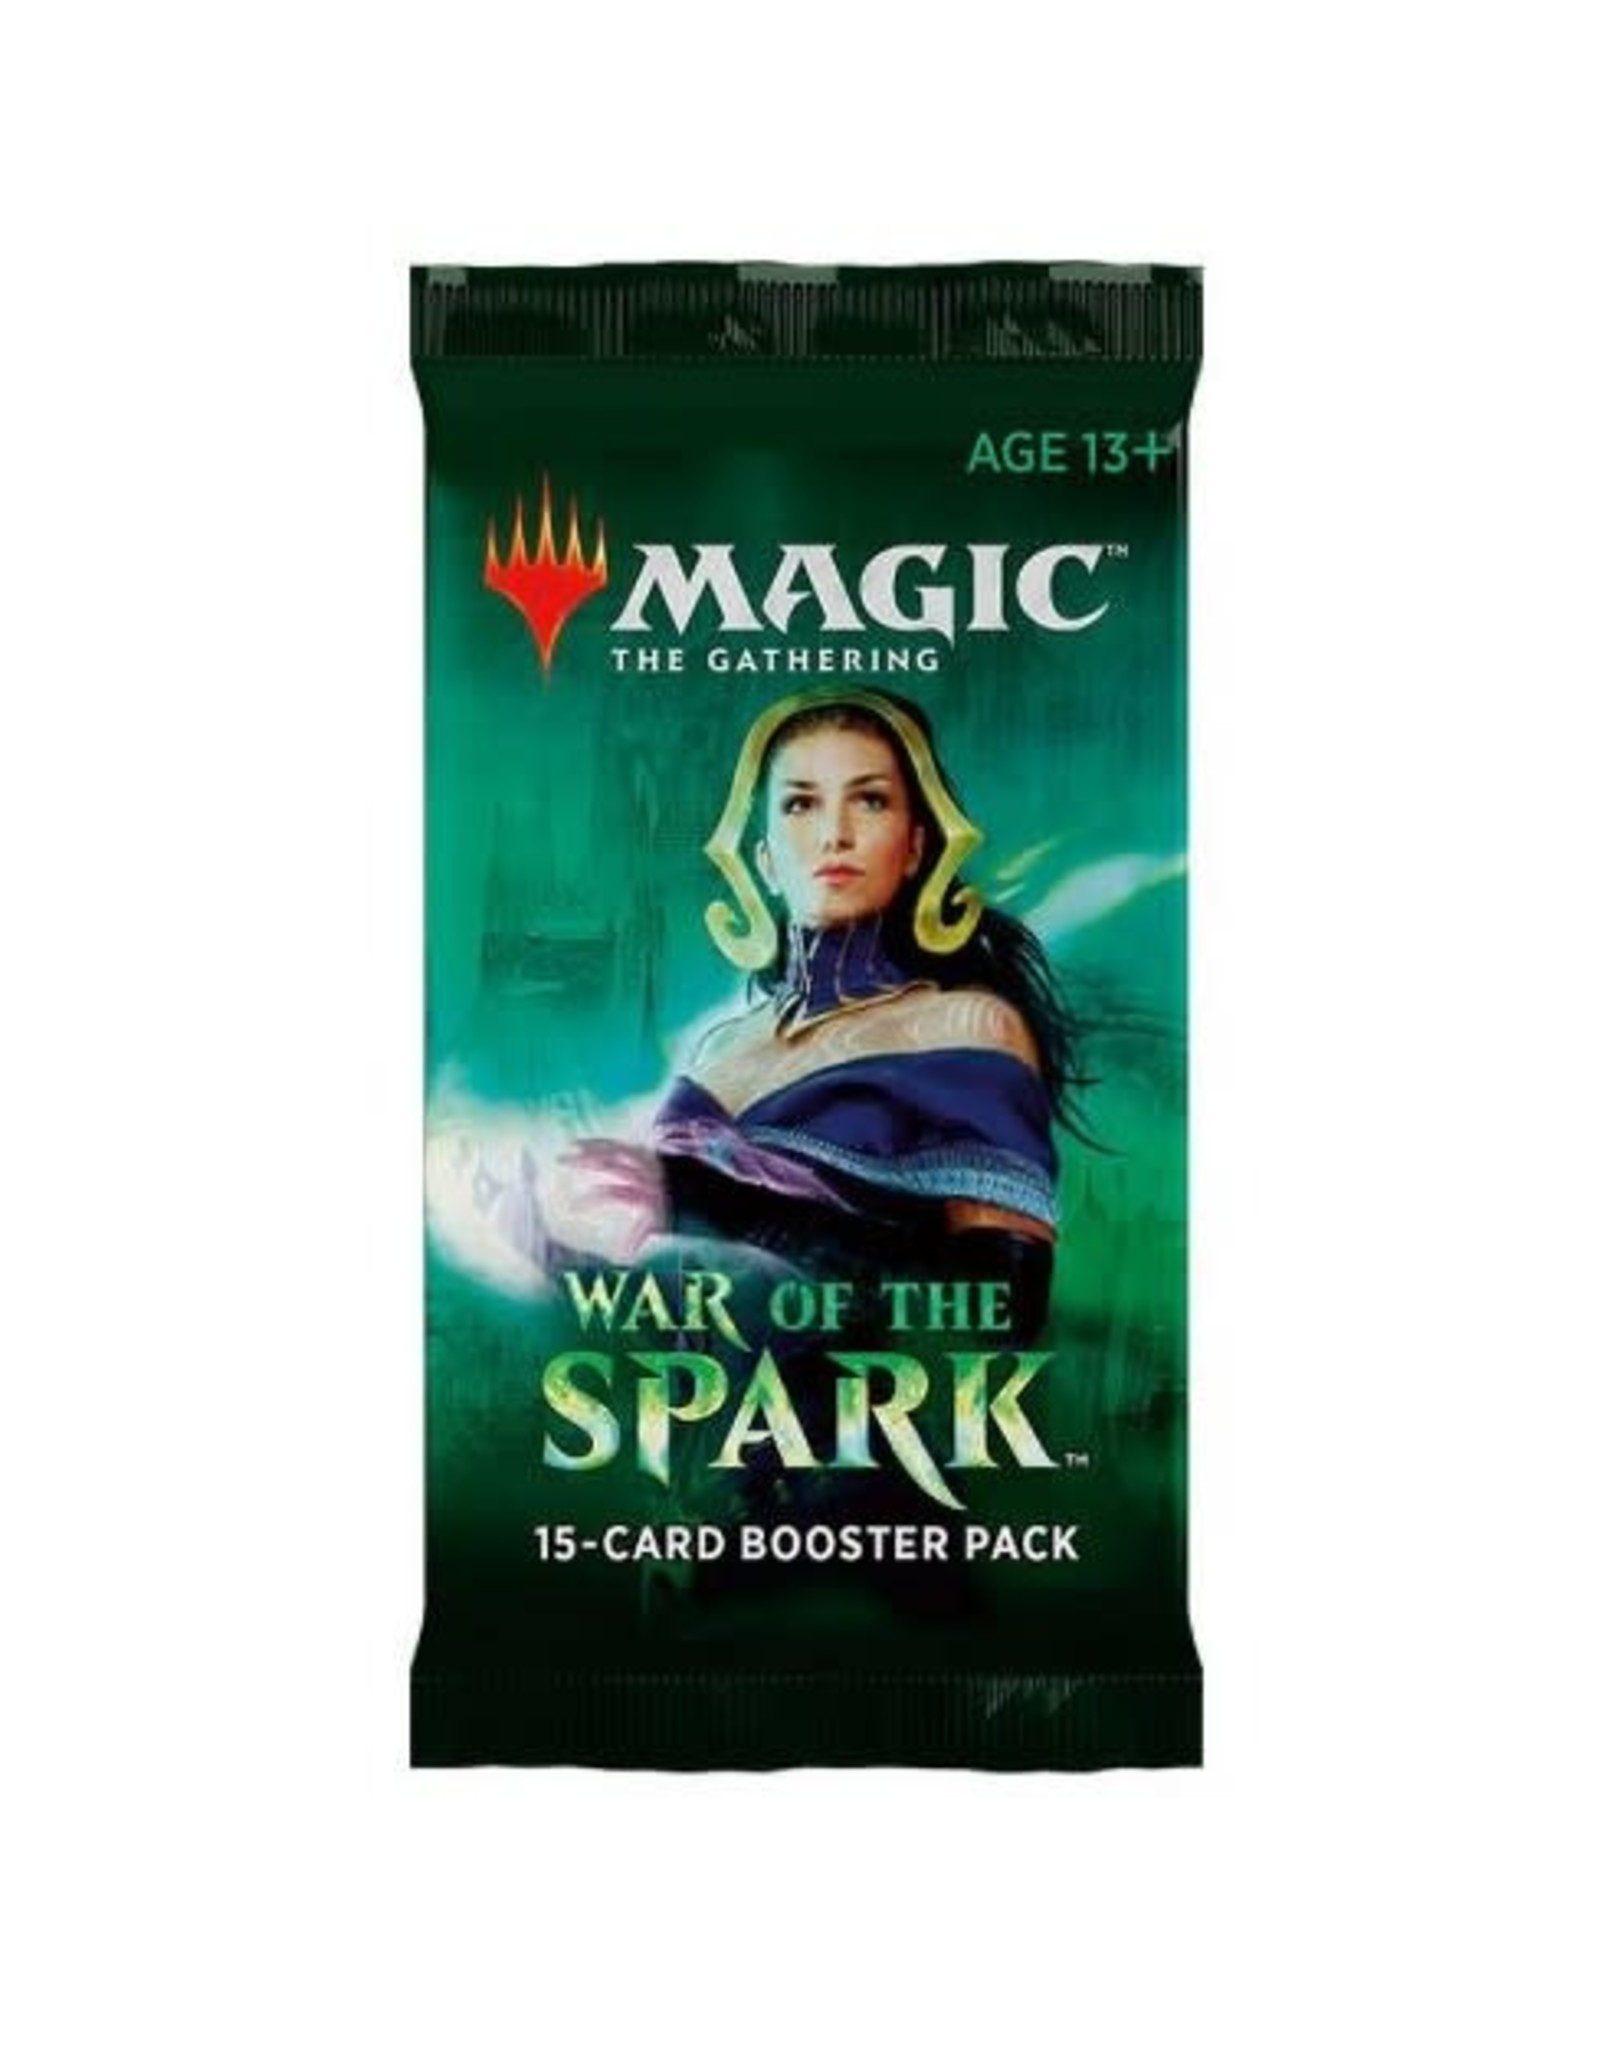 Magic: The Gathering Magic: The Gathering - War of the Spark Booster Pack